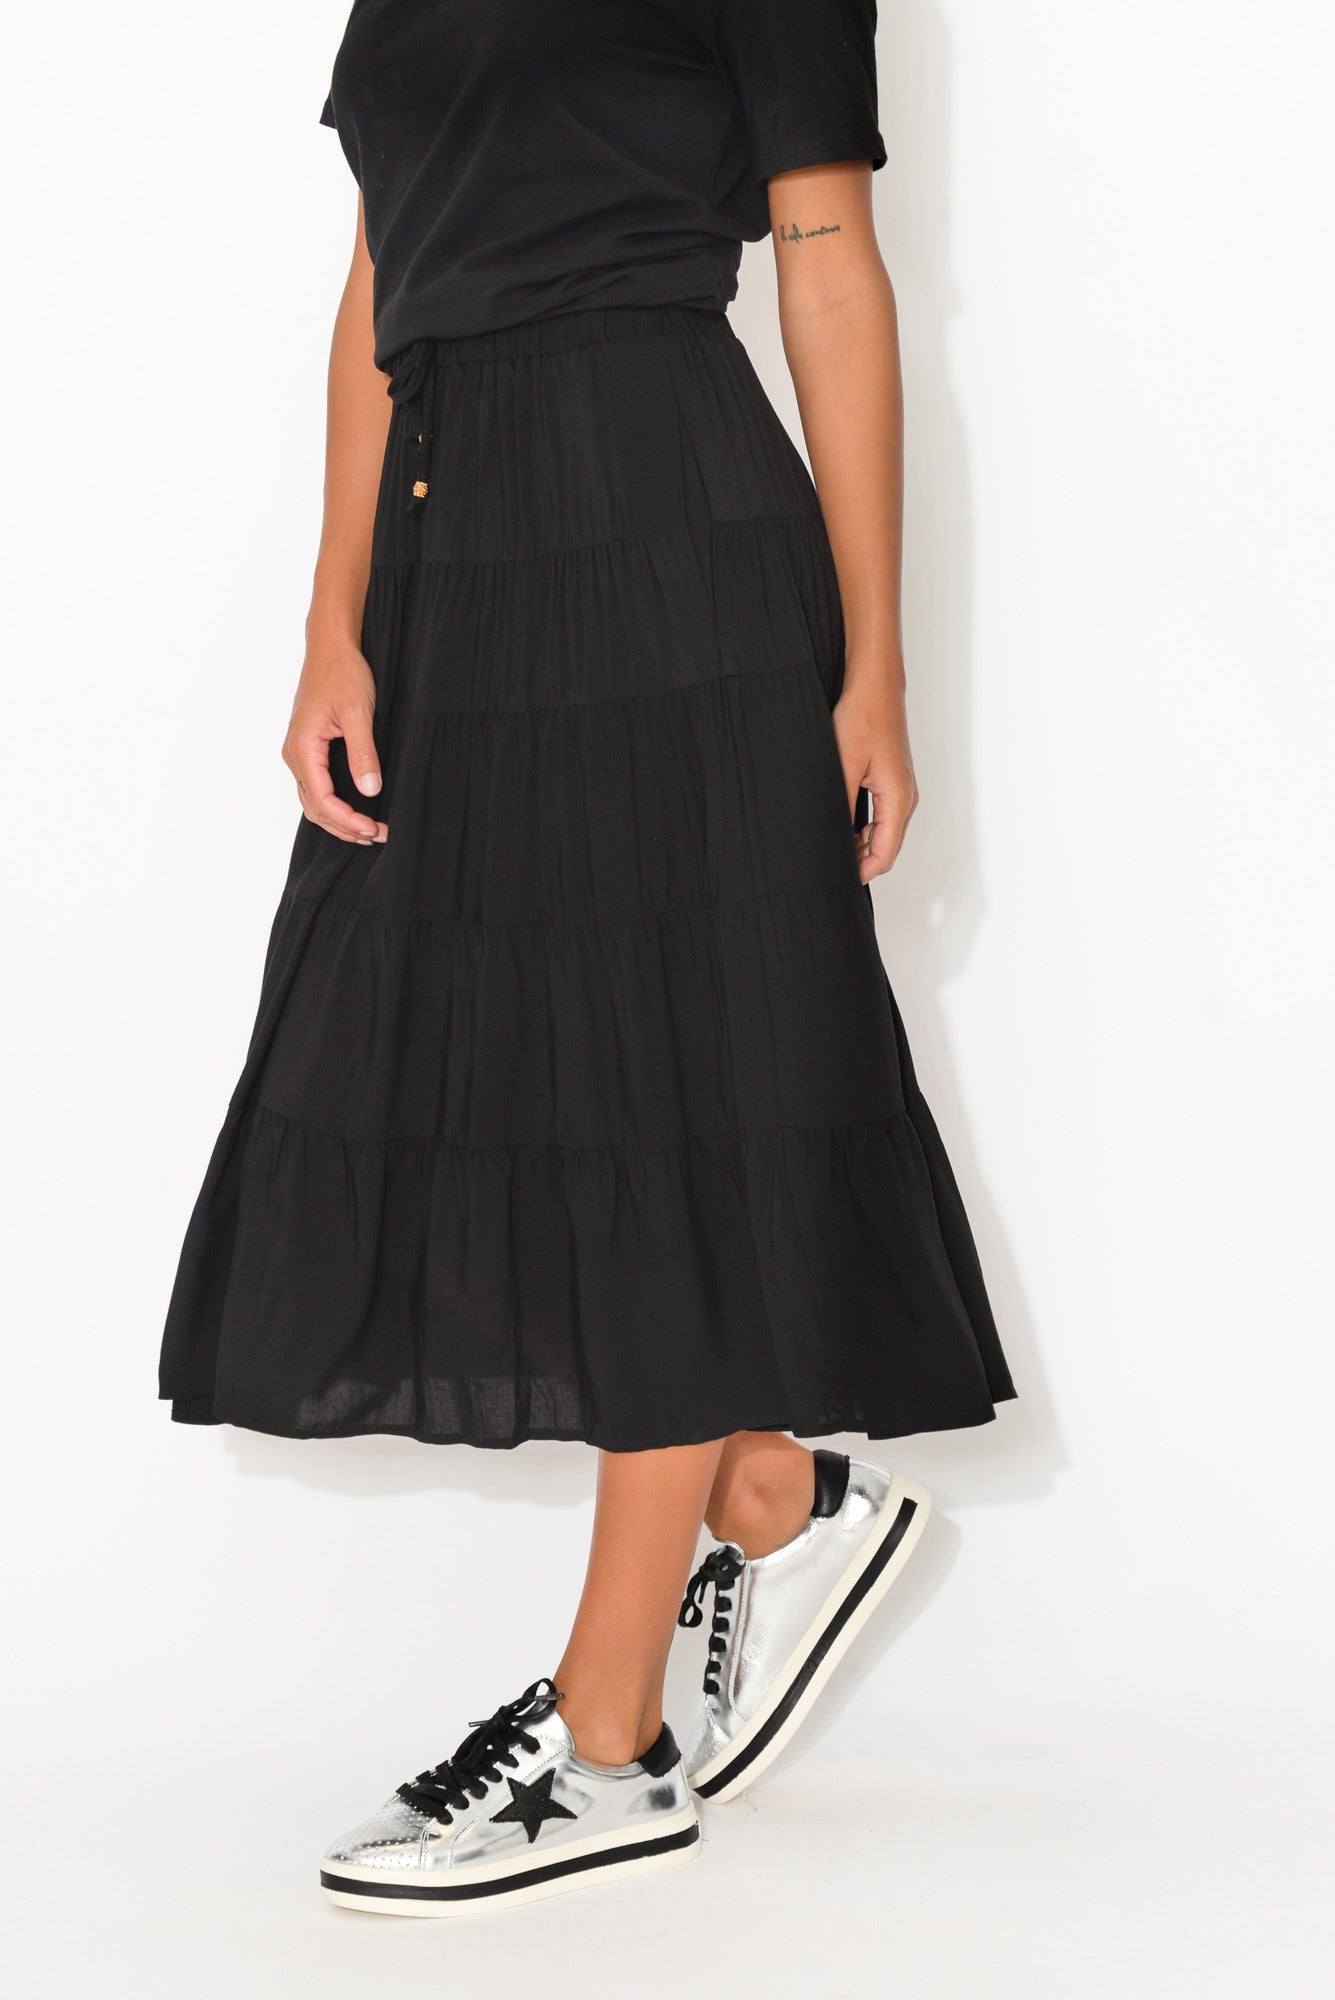 Norabel Black Tiered Skirt